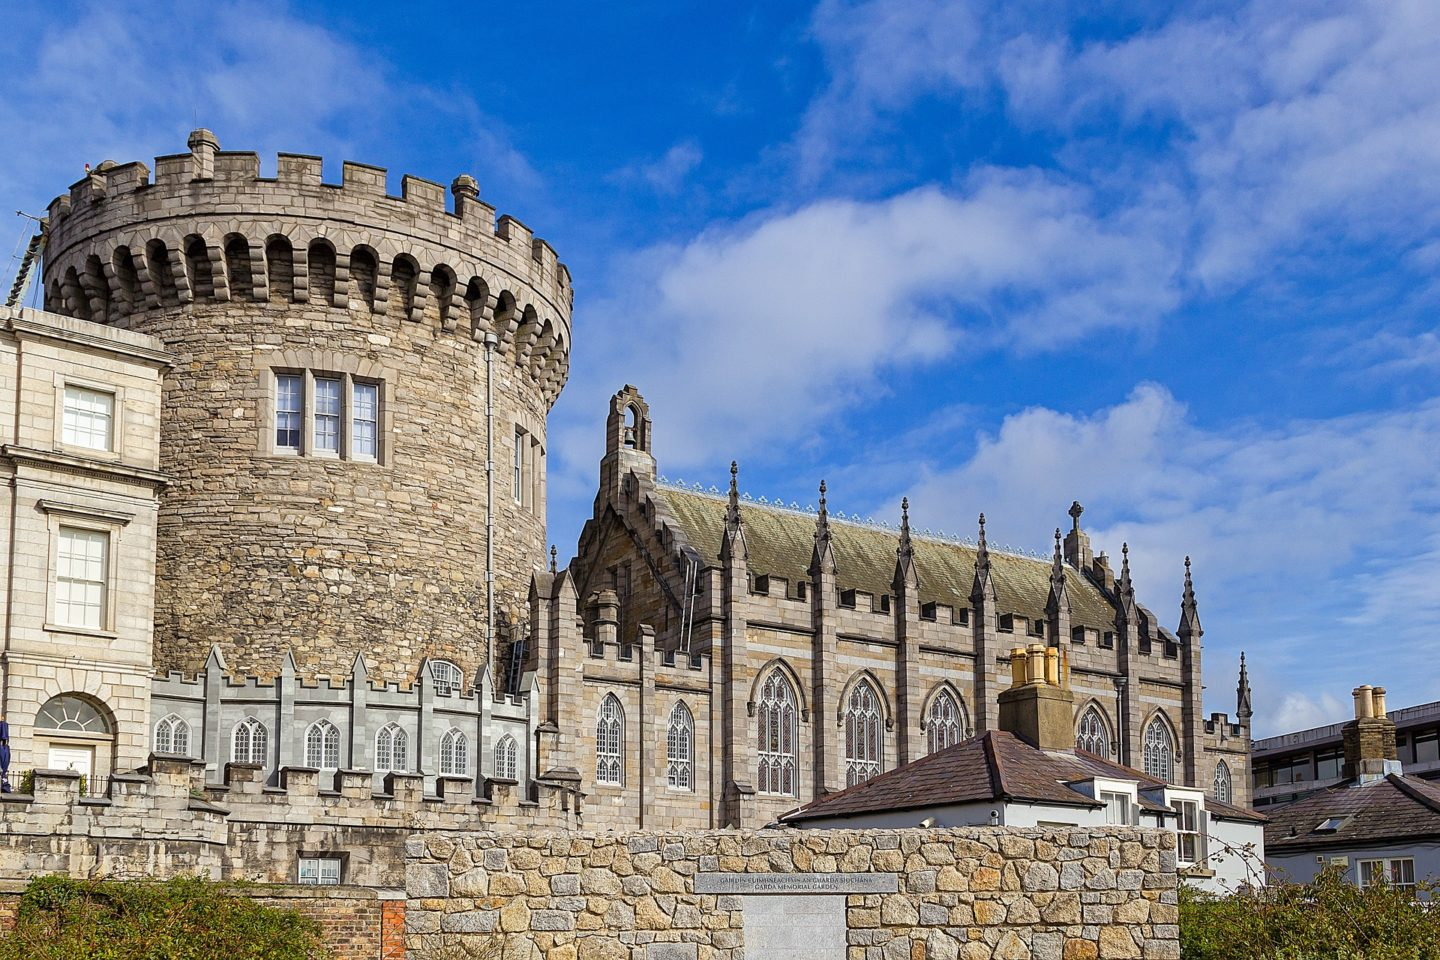 48 hours in Dublin - Dublin Castle